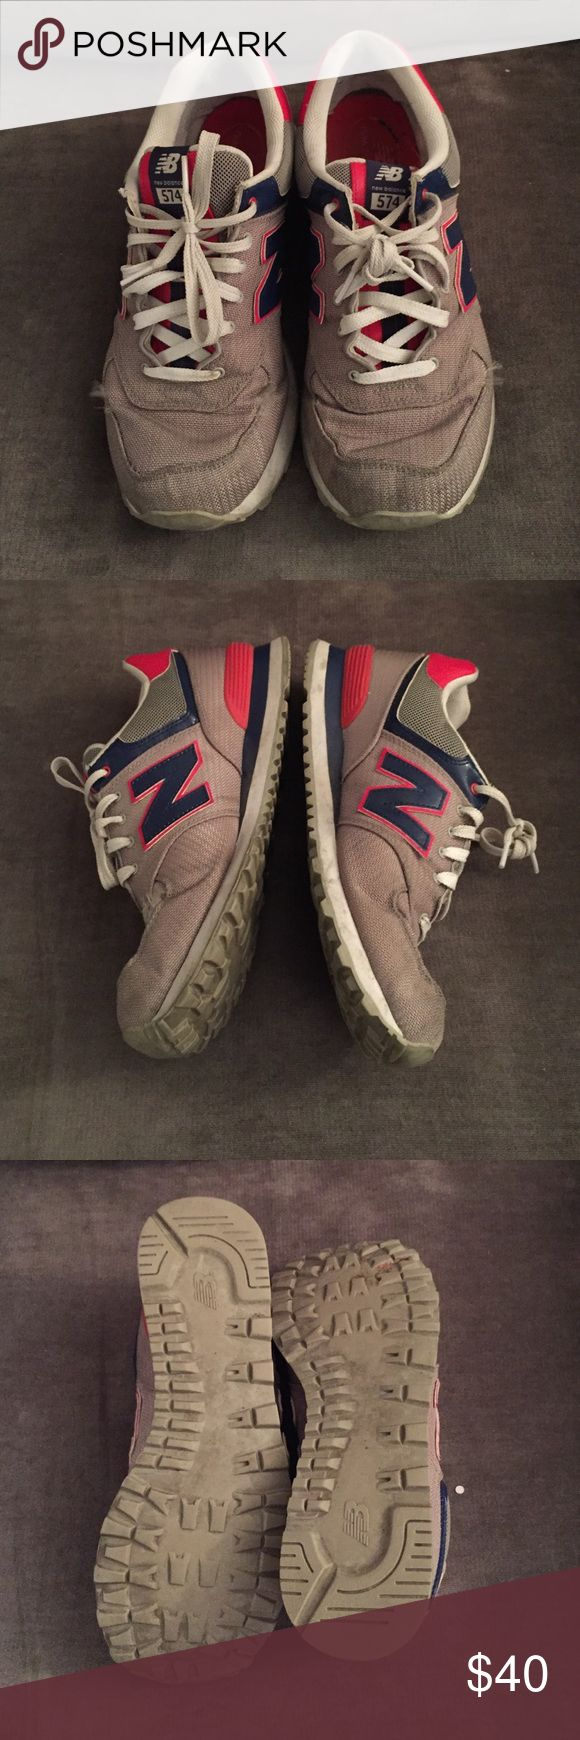 new balance 574 beige red blue